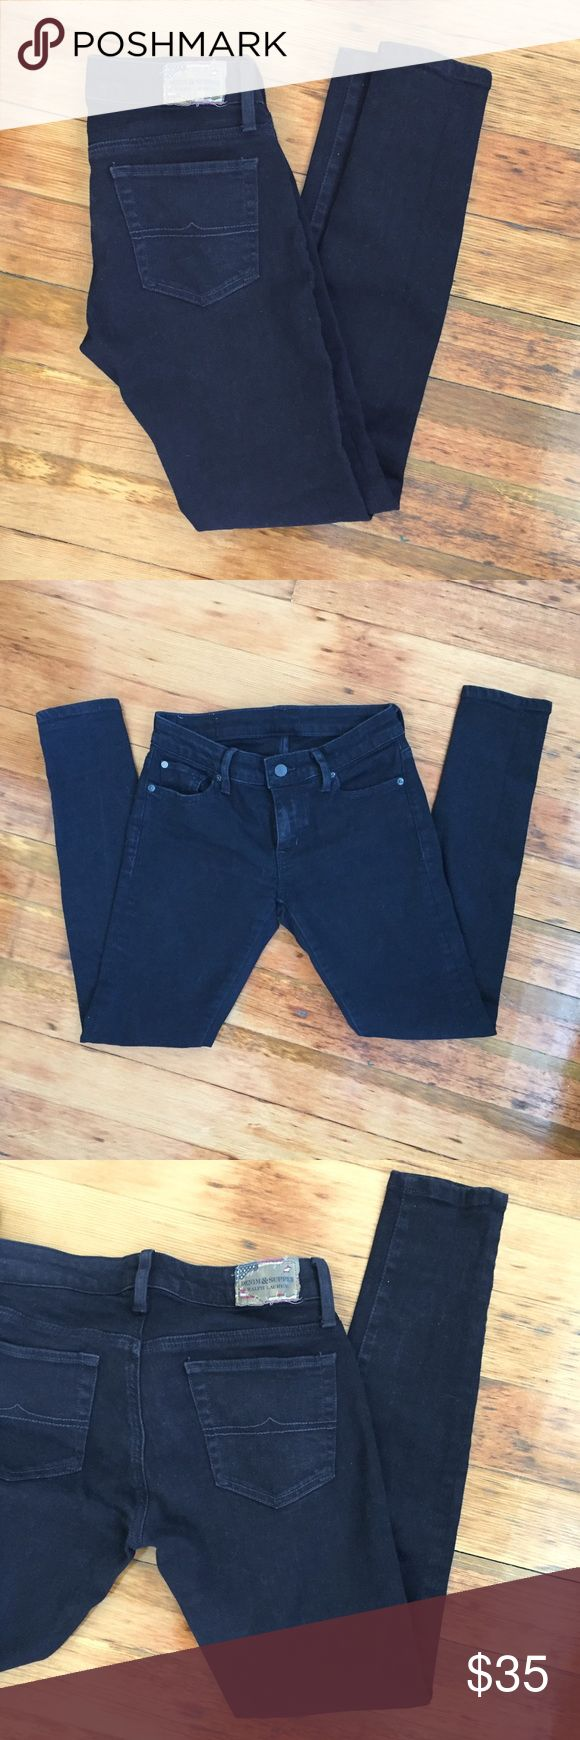 Ralph Lauren Jeans Demin & Supply black skinny jeans by Ralph Lauren. Only worn once! Size 25/30! Denim & Supply Ralph Lauren Jeans Skinny